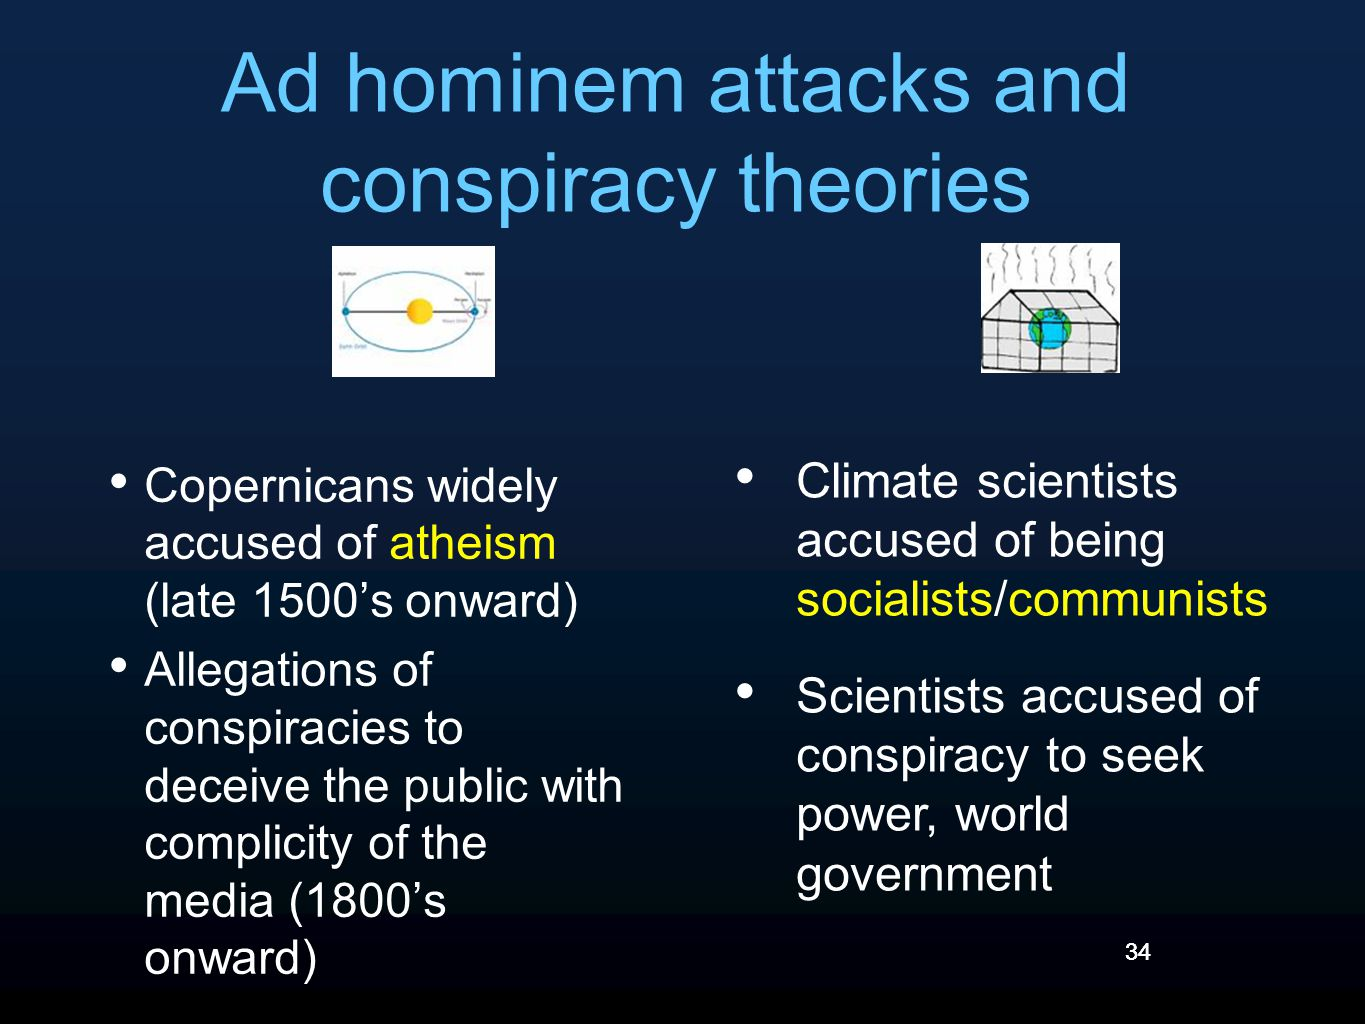 34 Ad hominem attacks and conspiracy theories Copernicans widely accused of atheism (late 1500's onward) Allegations of conspiracies to deceive the public with complicity of the media (1800's onward) Climate scientists accused of being socialists/communists Scientists accused of conspiracy to seek power, world government 34